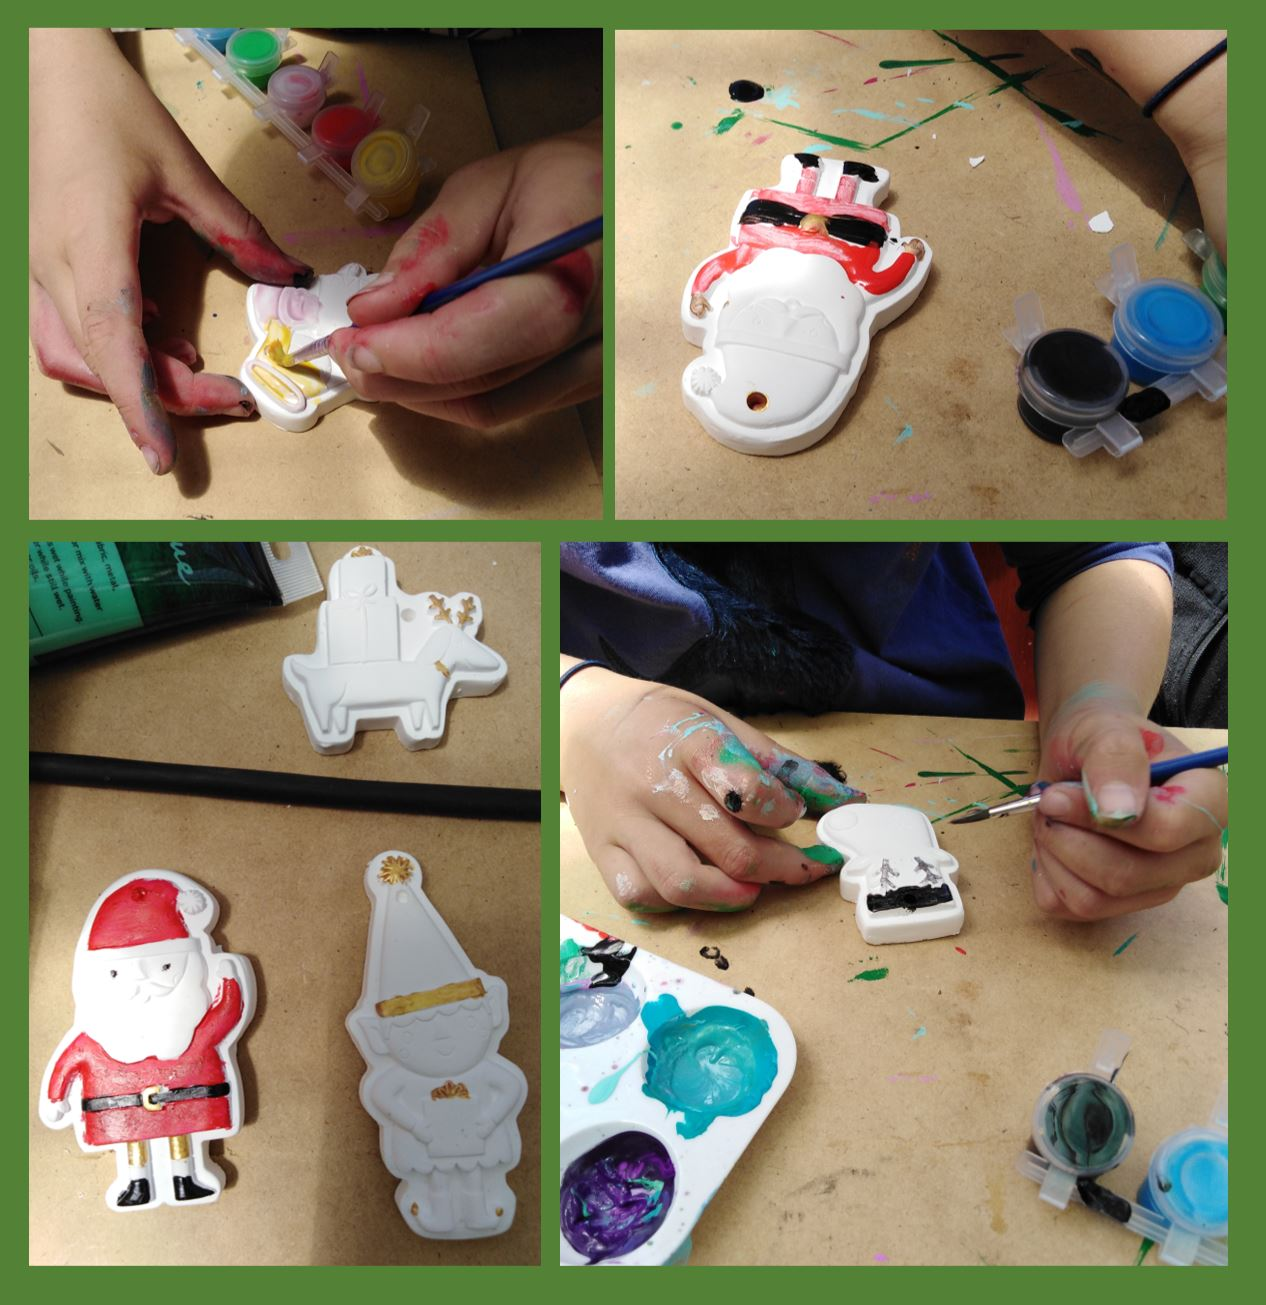 images of children painting ornaments